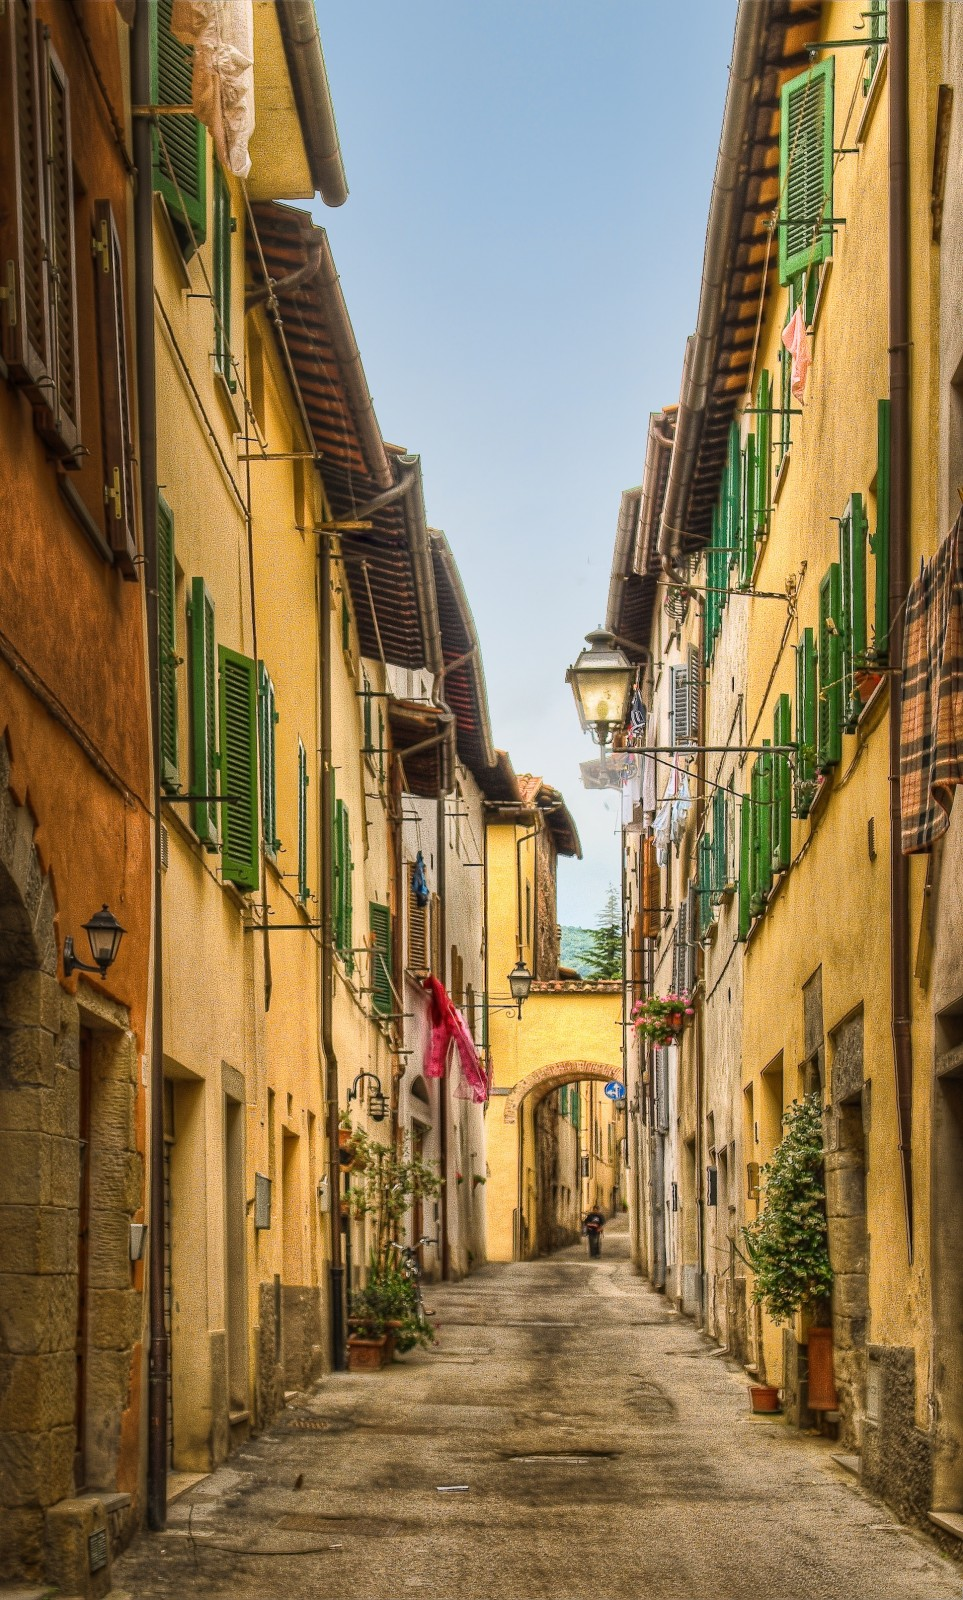 A narrow street in Sansepolcro [Photo Credtis: Anguskirk]